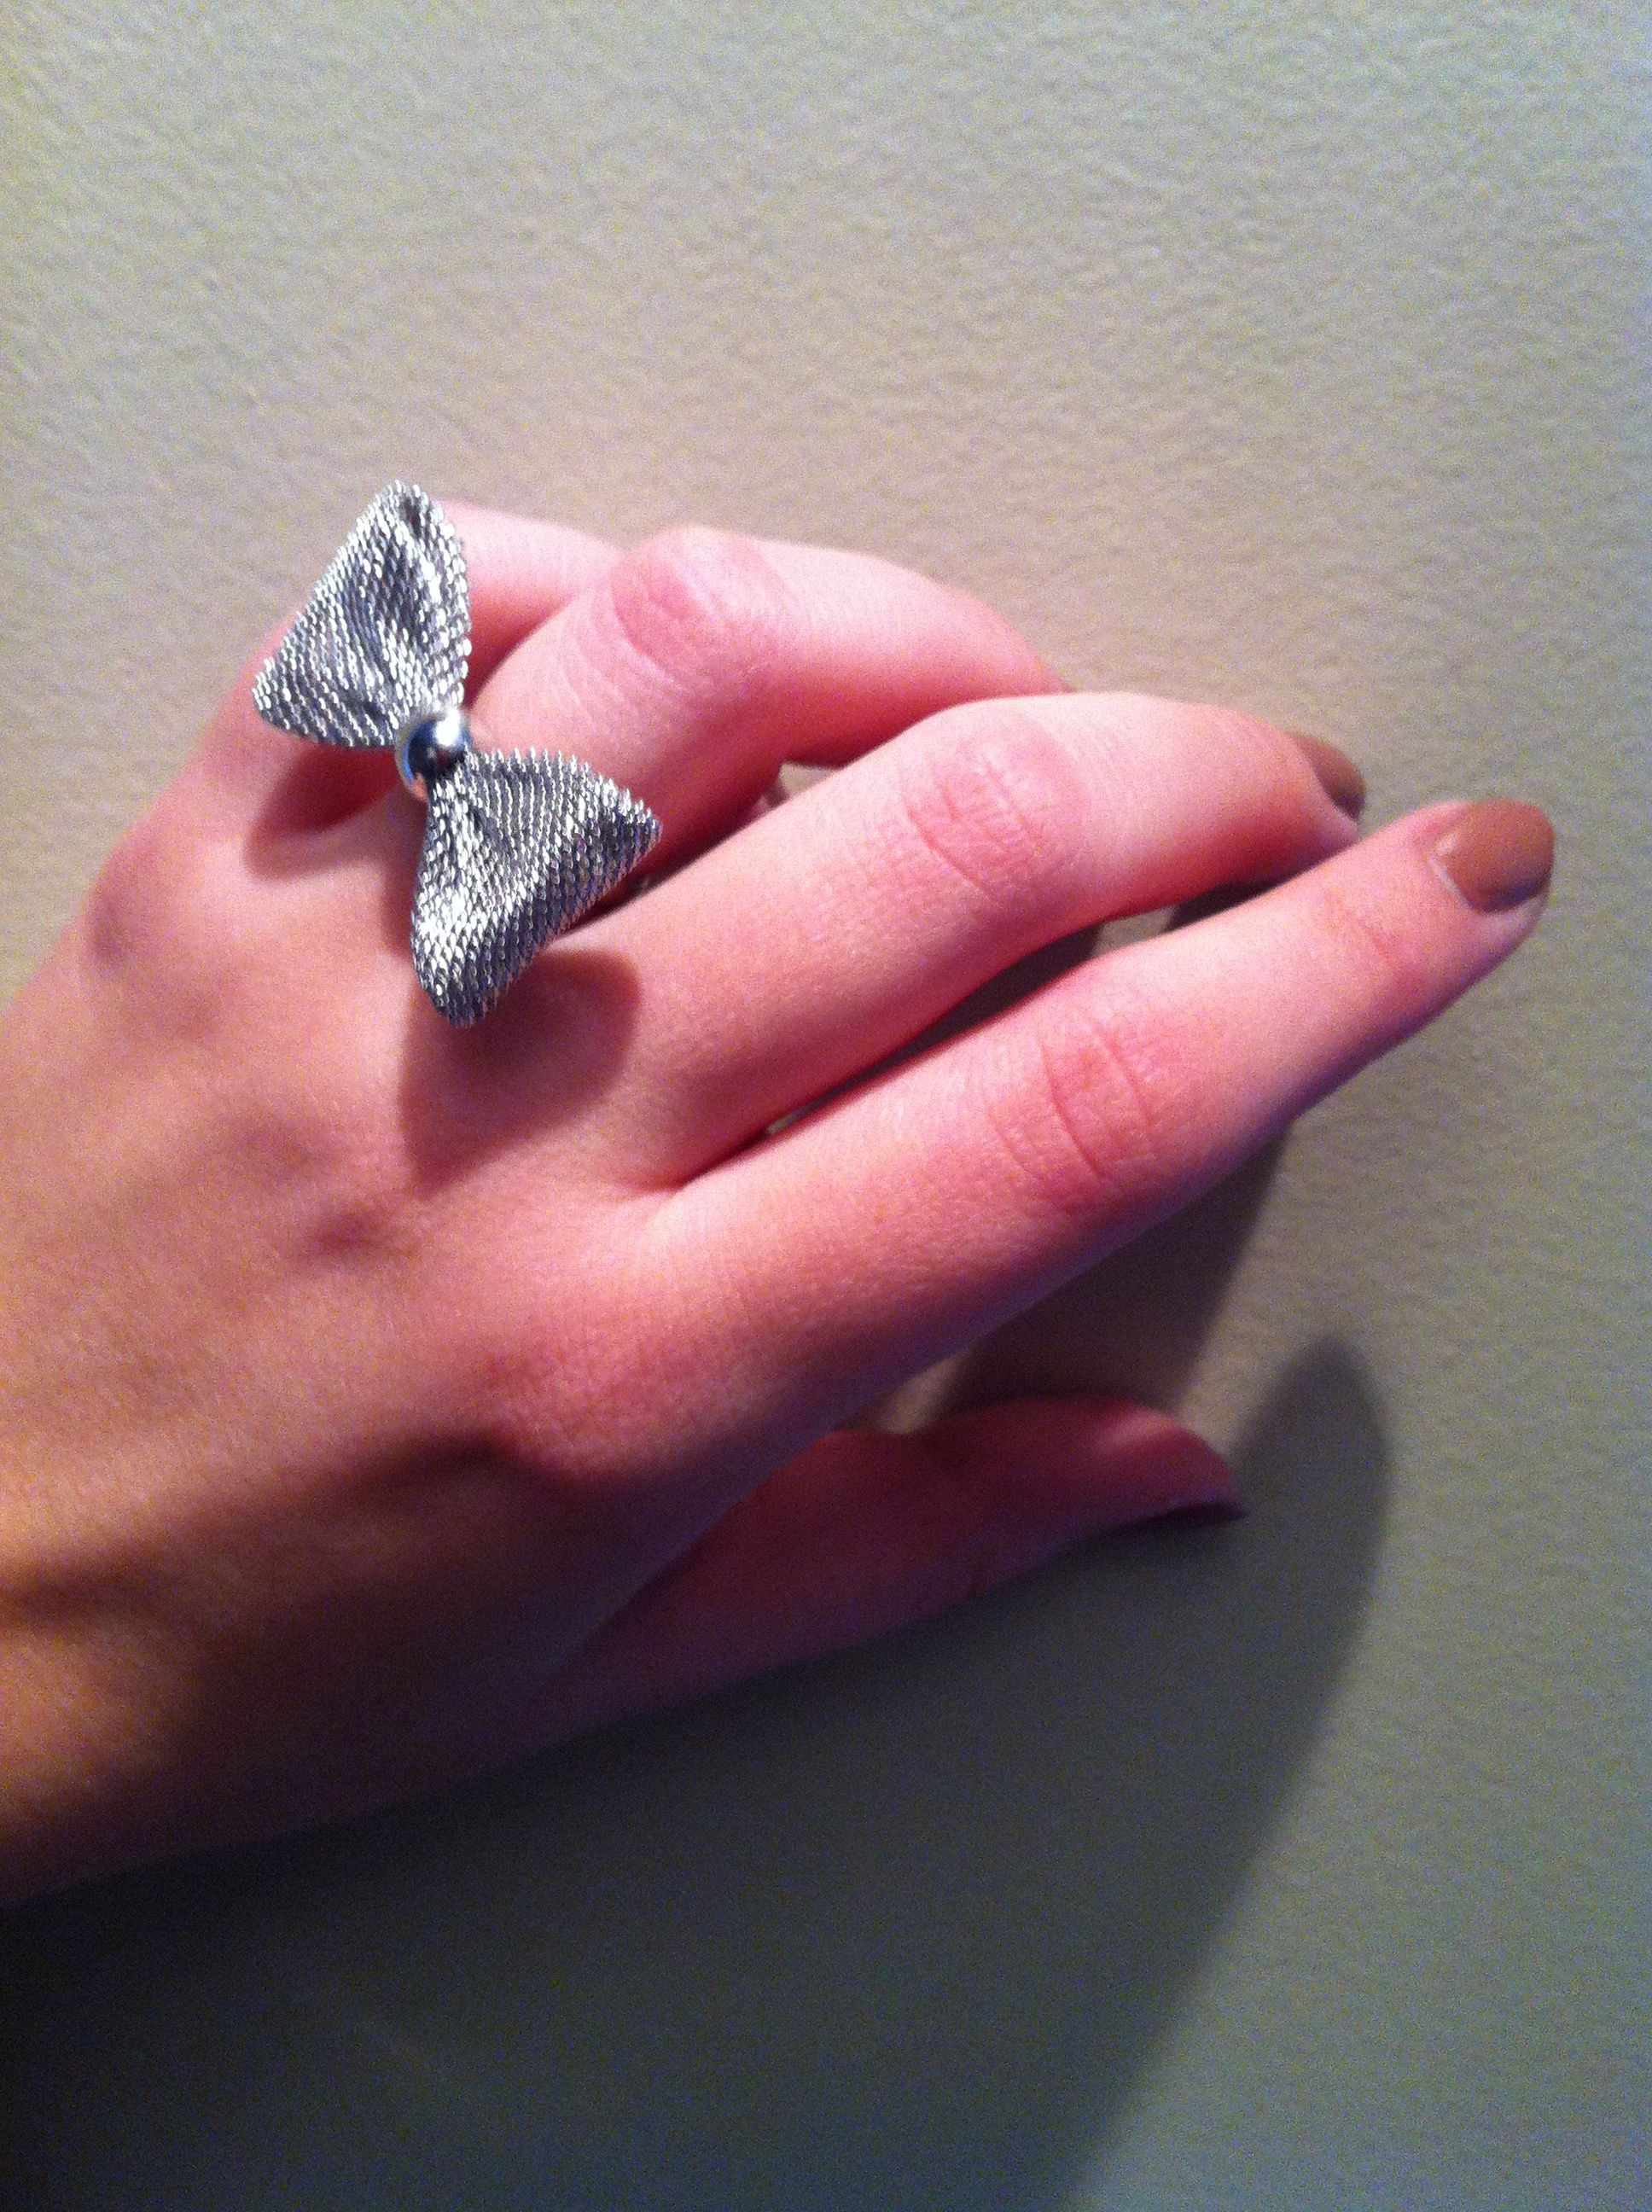 My ring now